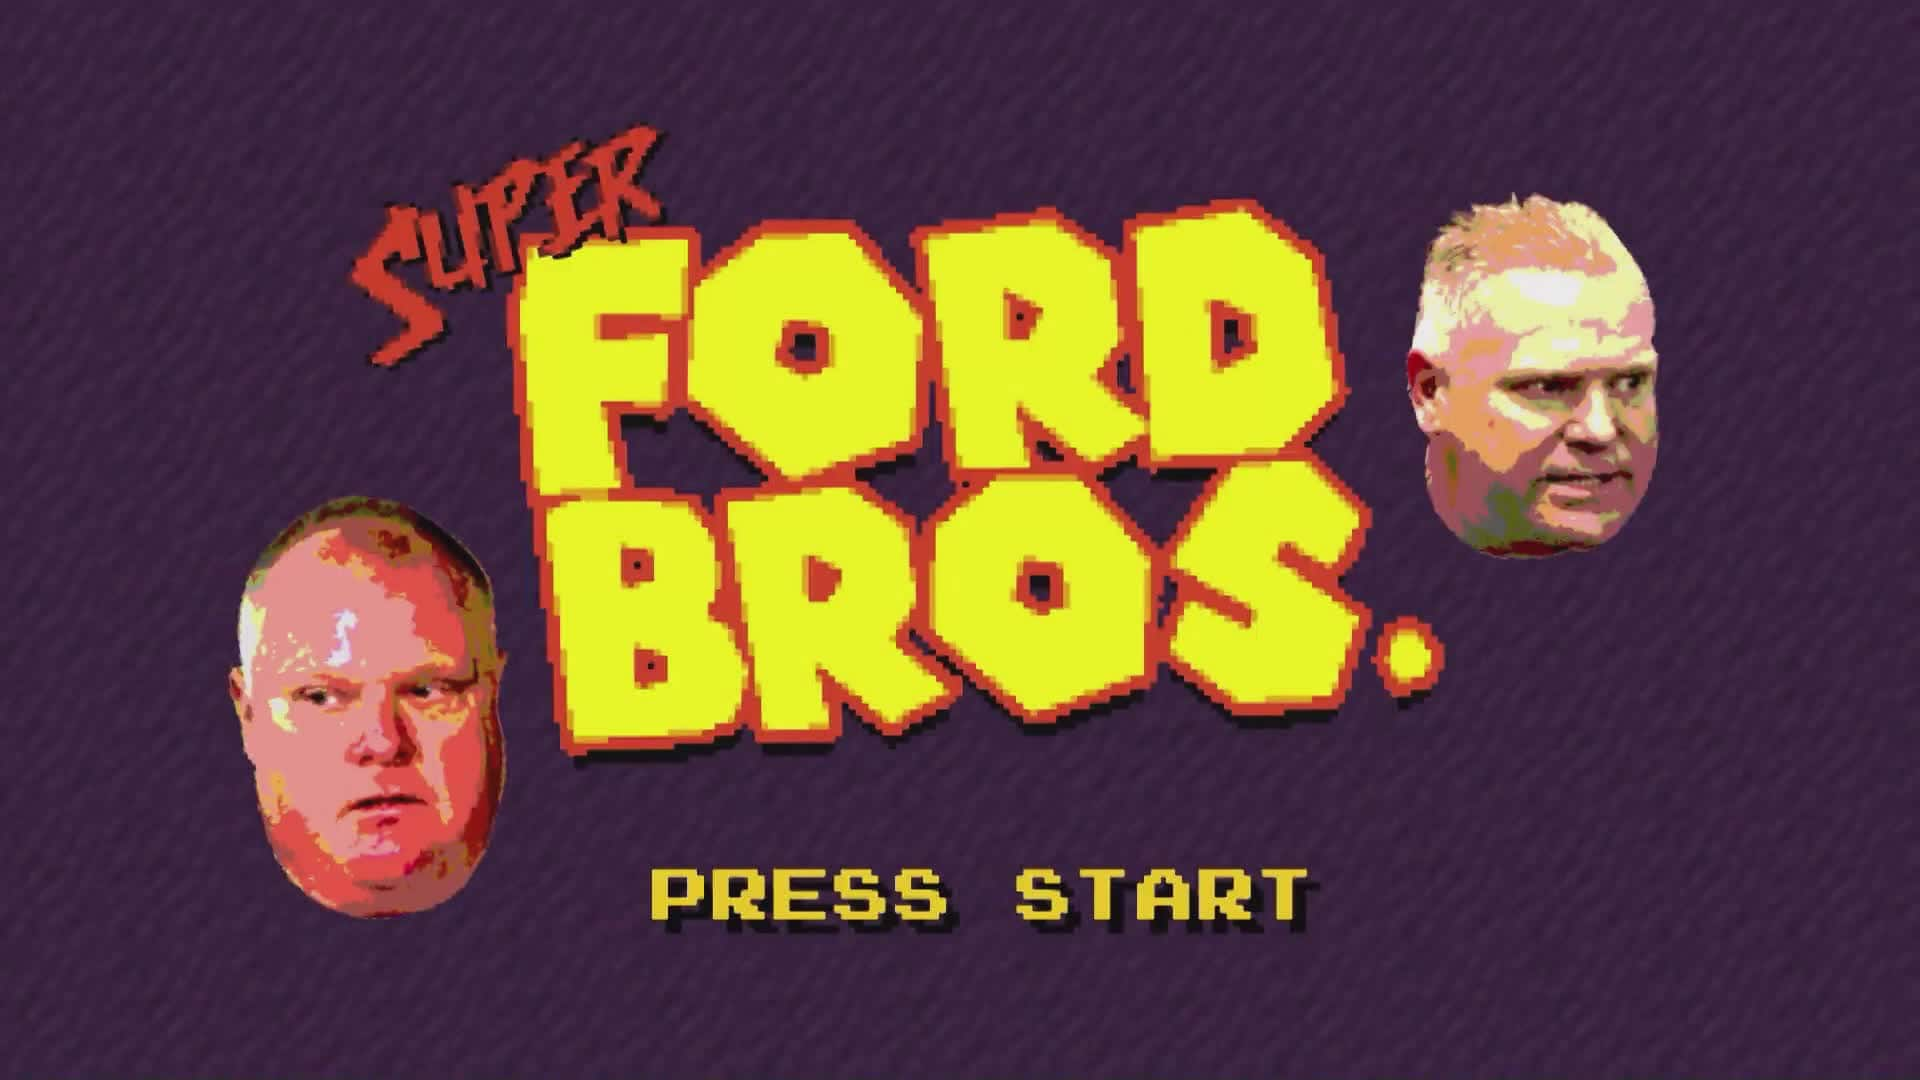 Super Ford Bros.